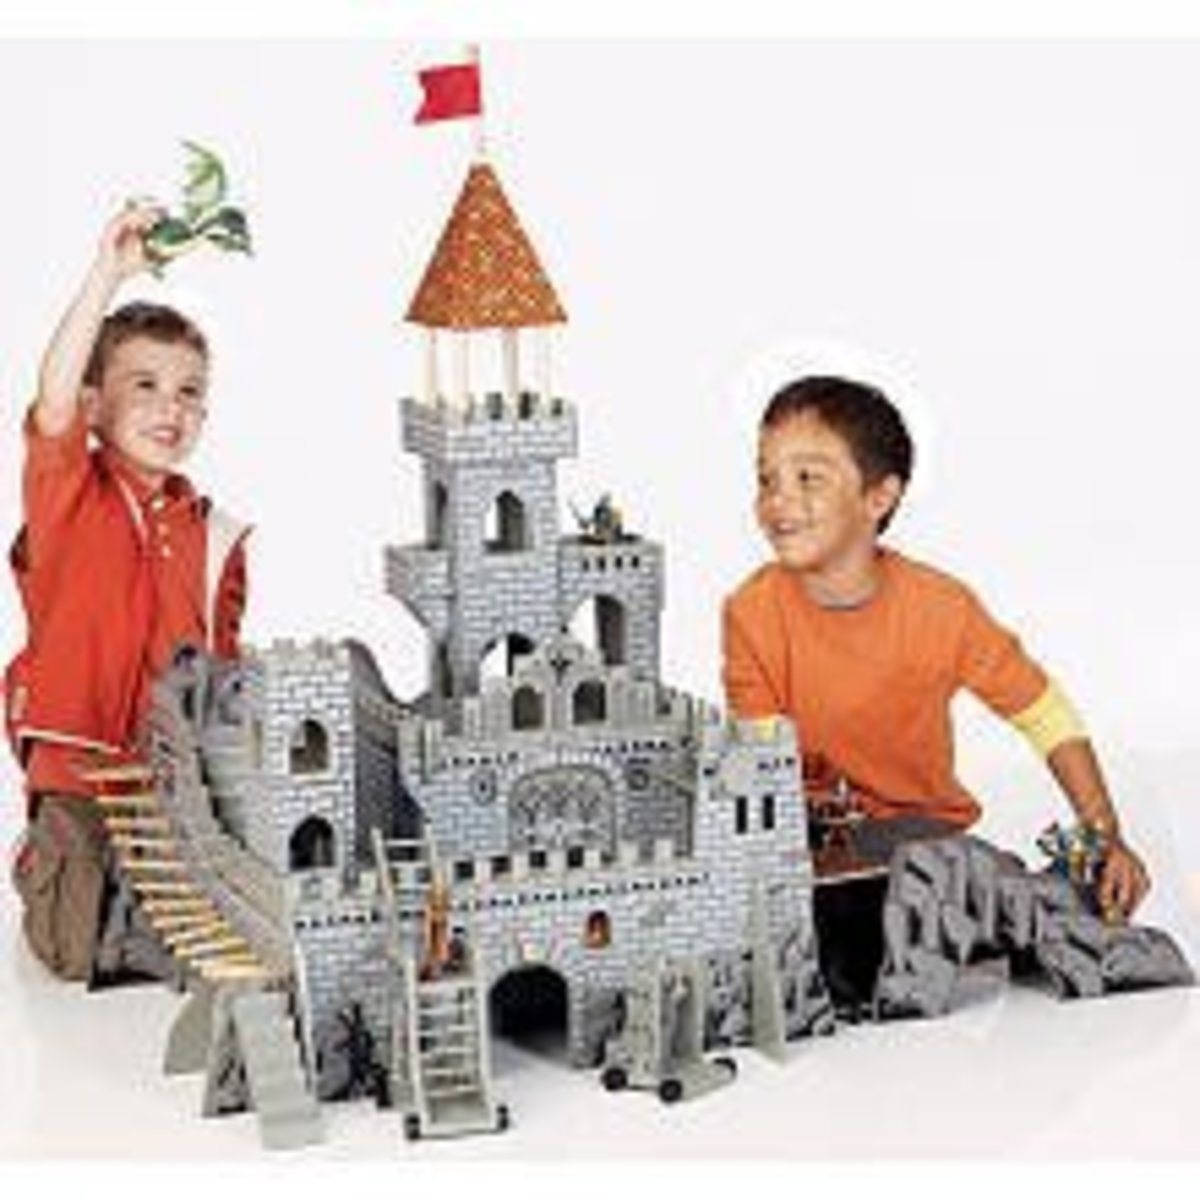 Toy Castles For Little Boys : Toy castles forts for children kids wooden